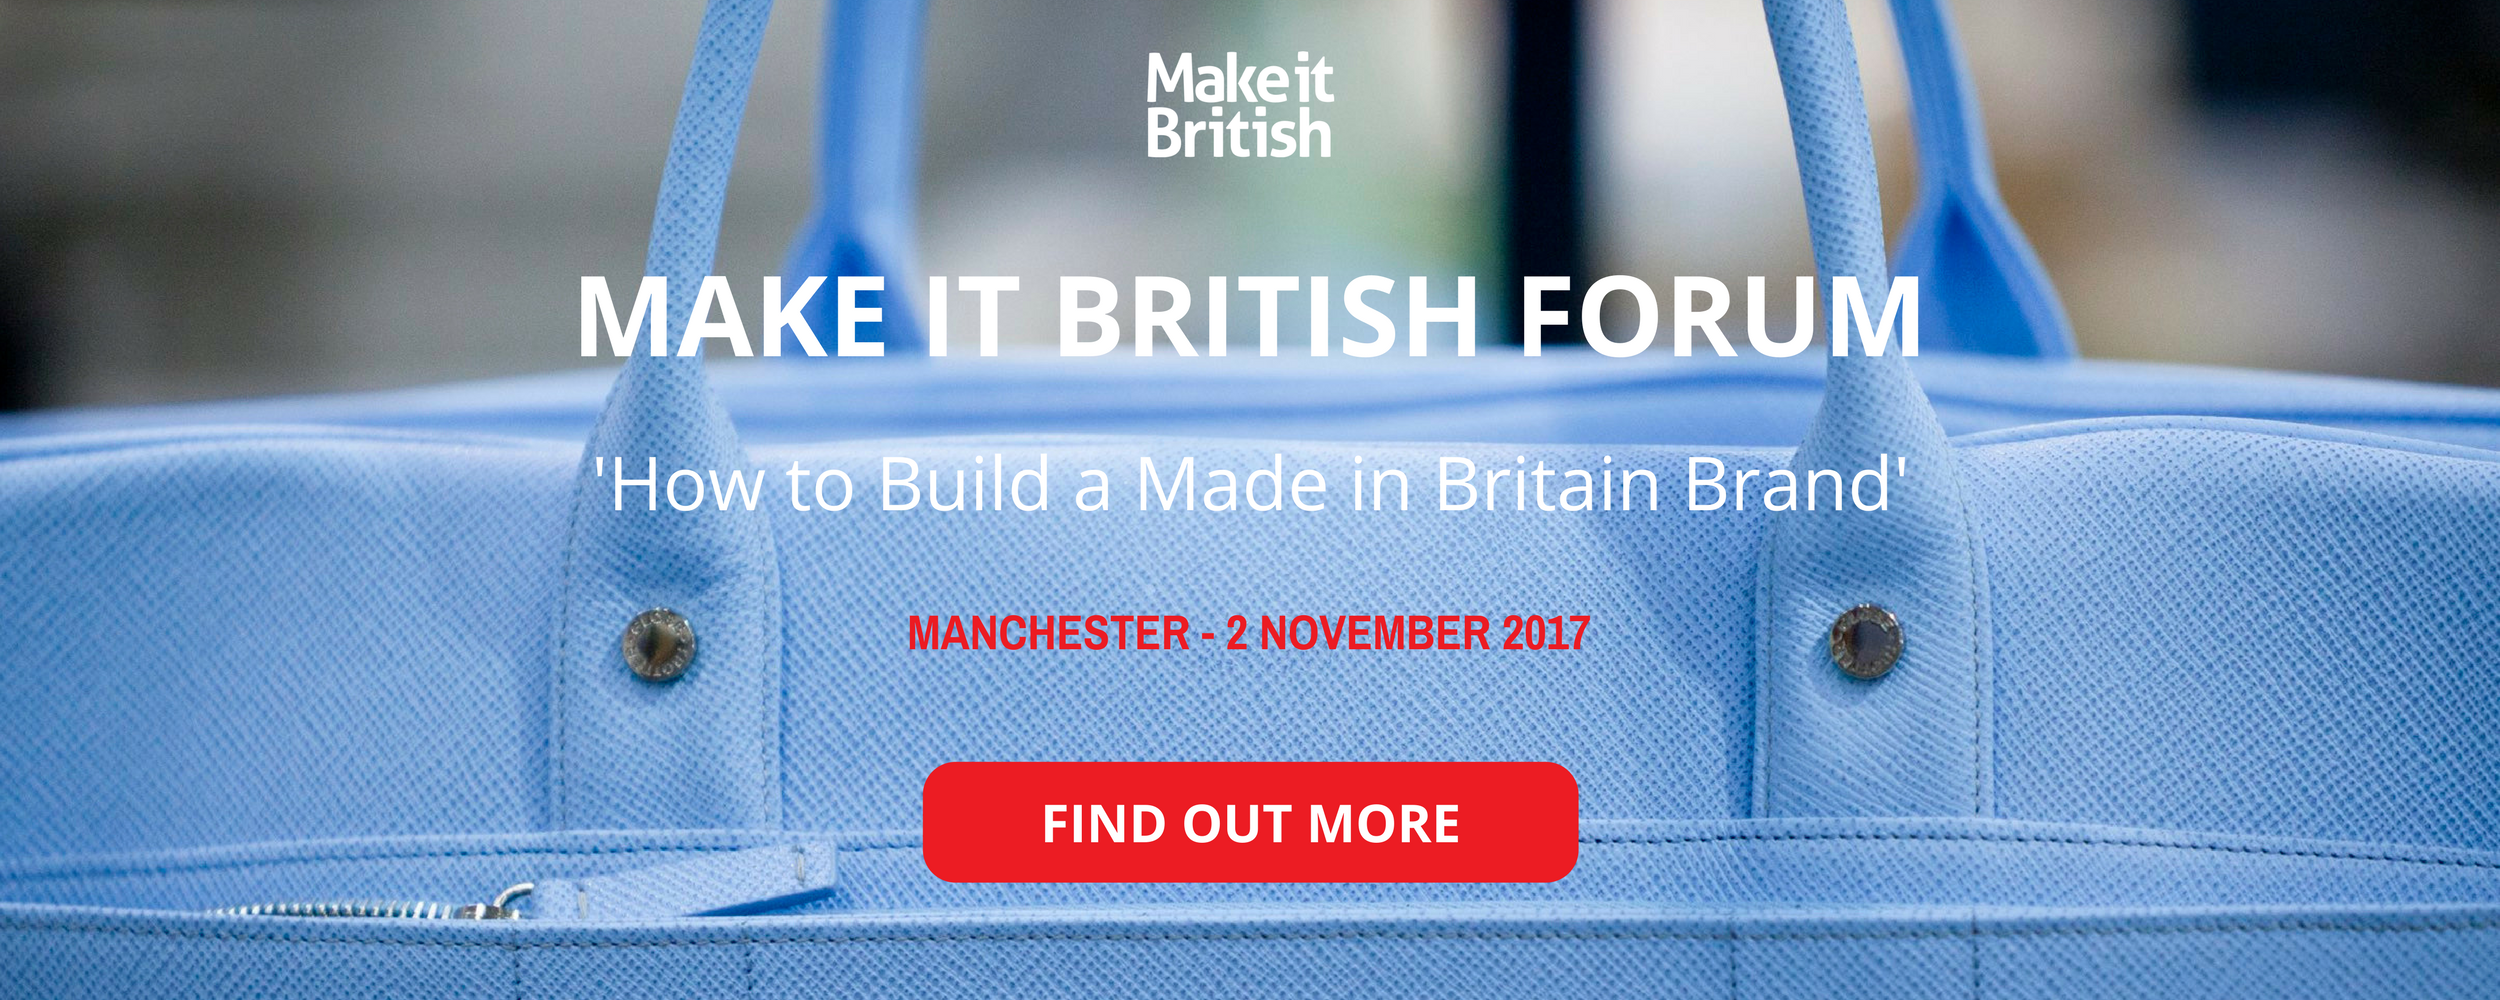 Make it British Forum Manchester